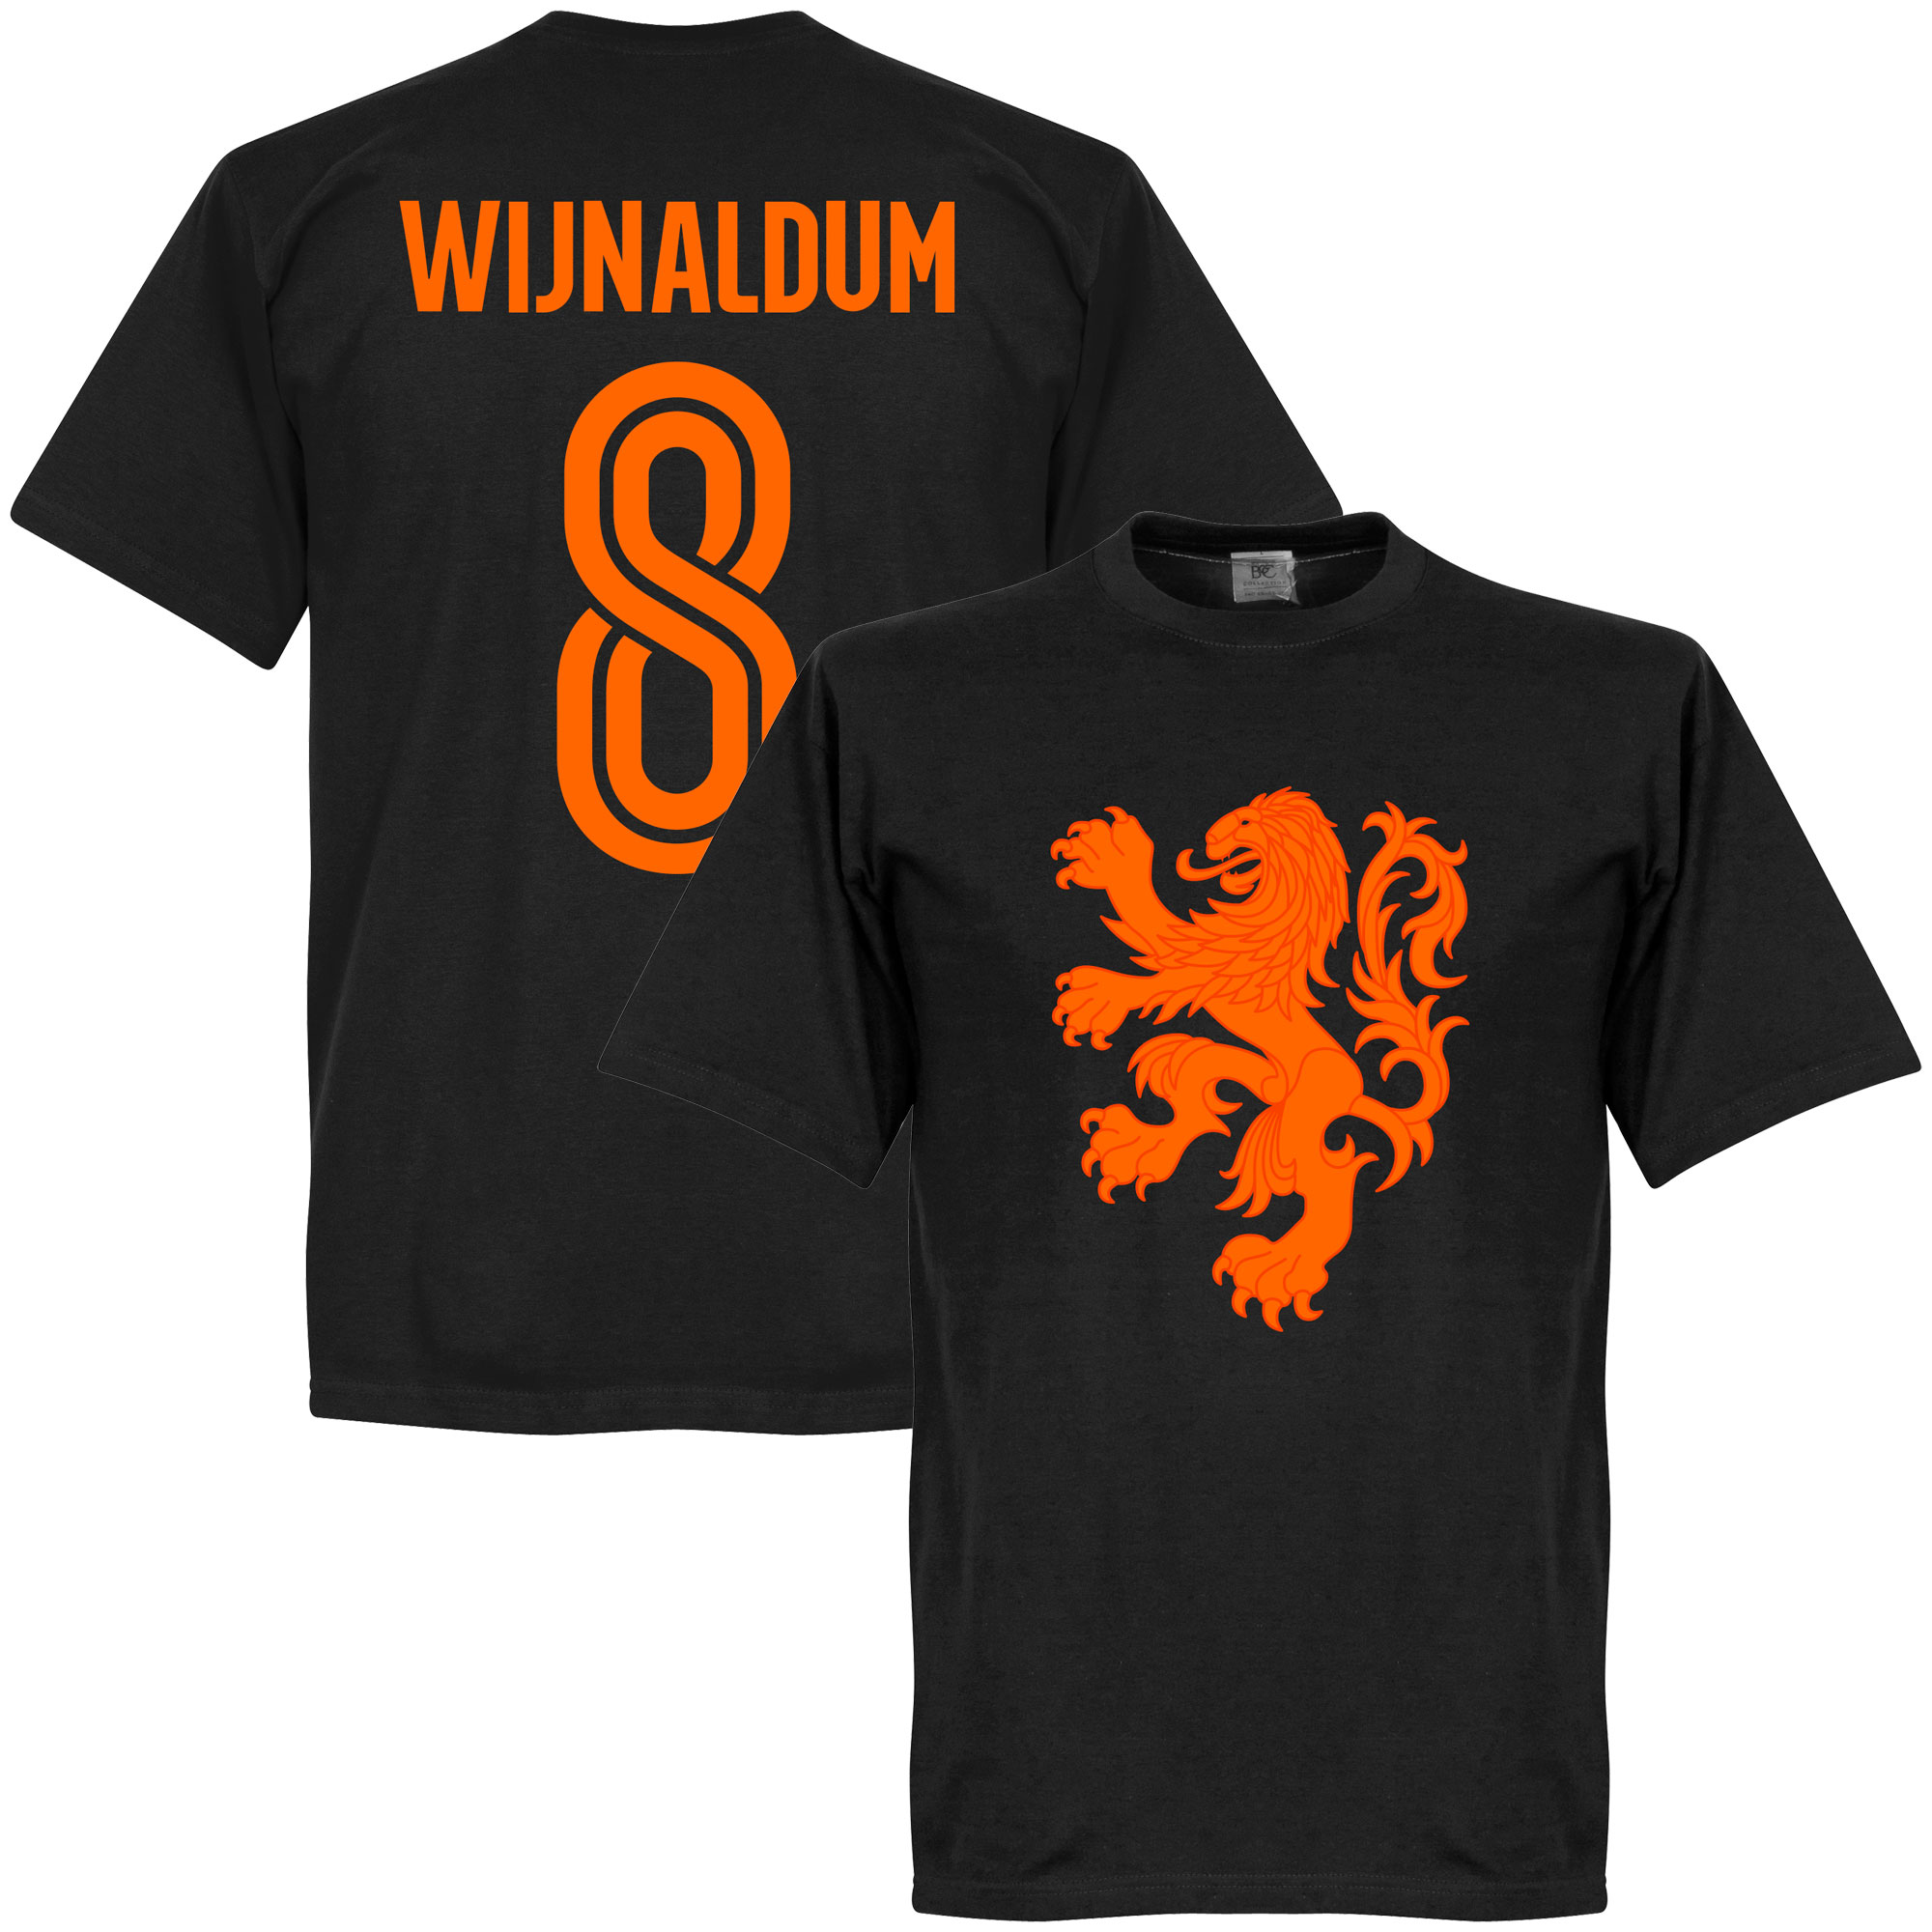 Holland Wijnaldum Lion Tee - Black - XS